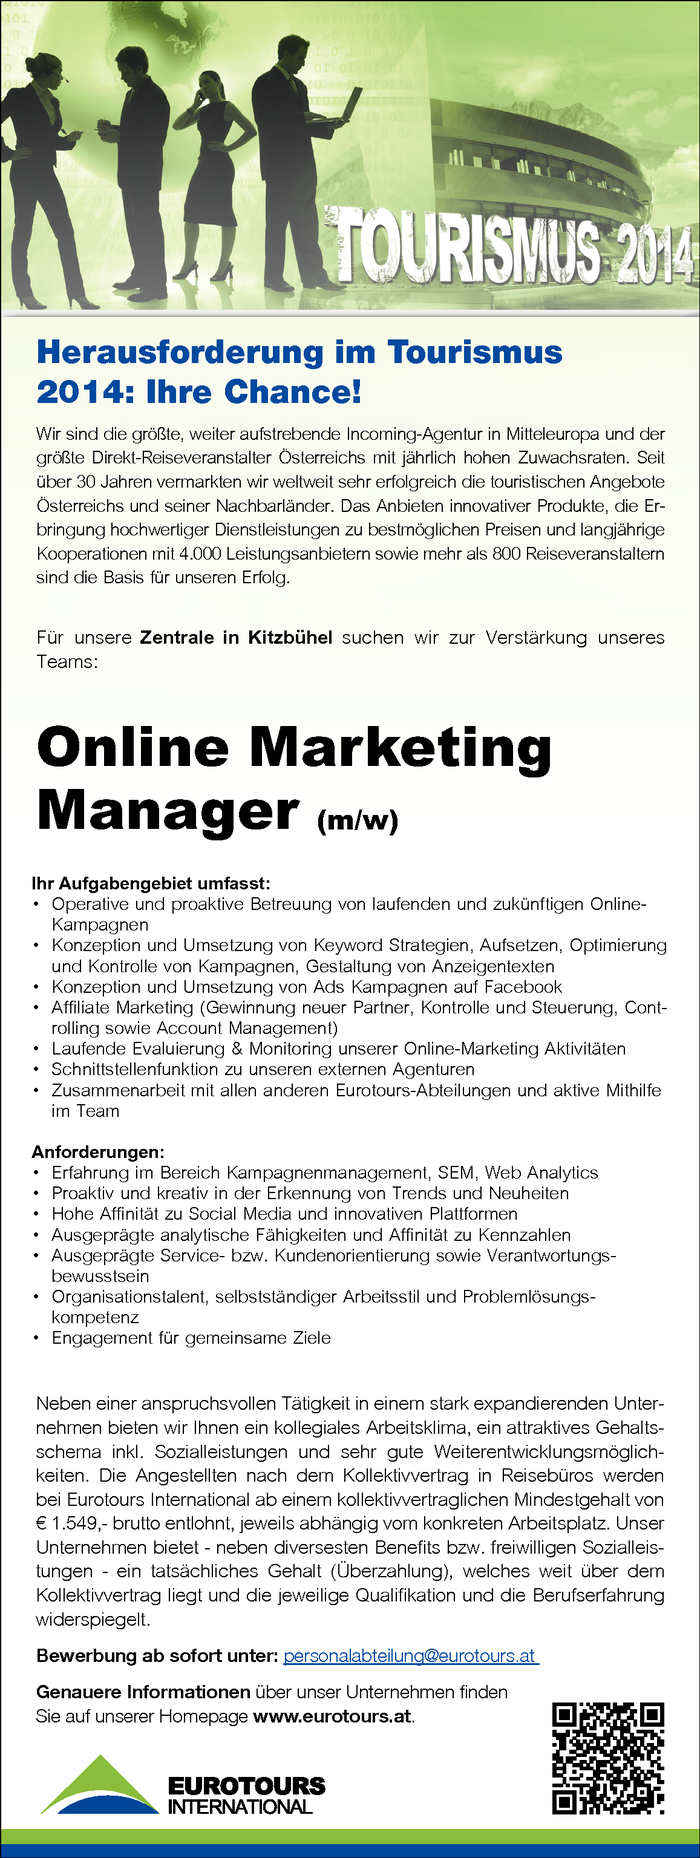 Online Marketing Manager (m/w)